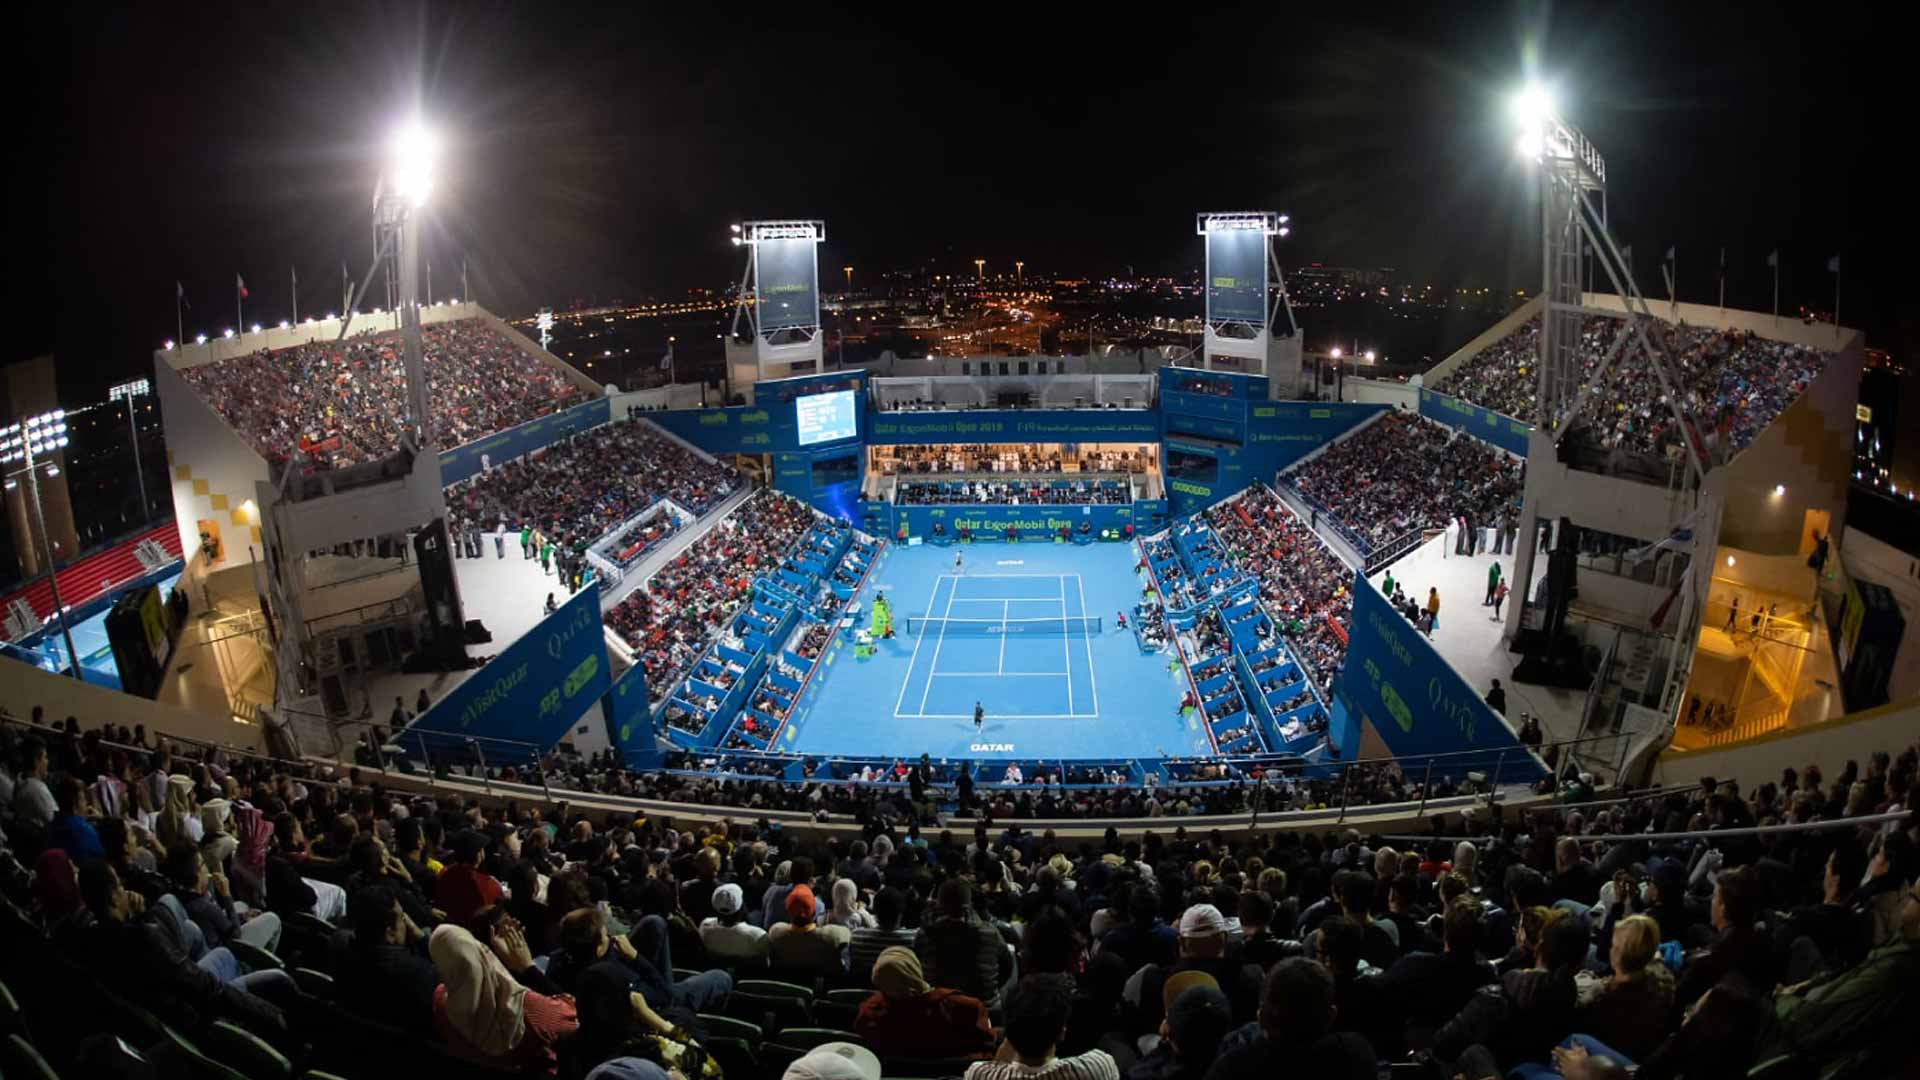 The <a href='https://www.atptour.com/en/tournaments/doha/451/overview'>Qatar ExxonMobil Open</a> in Doha claims the Tournament of the Year award in the 250 category in the 2019 ATP Awards.